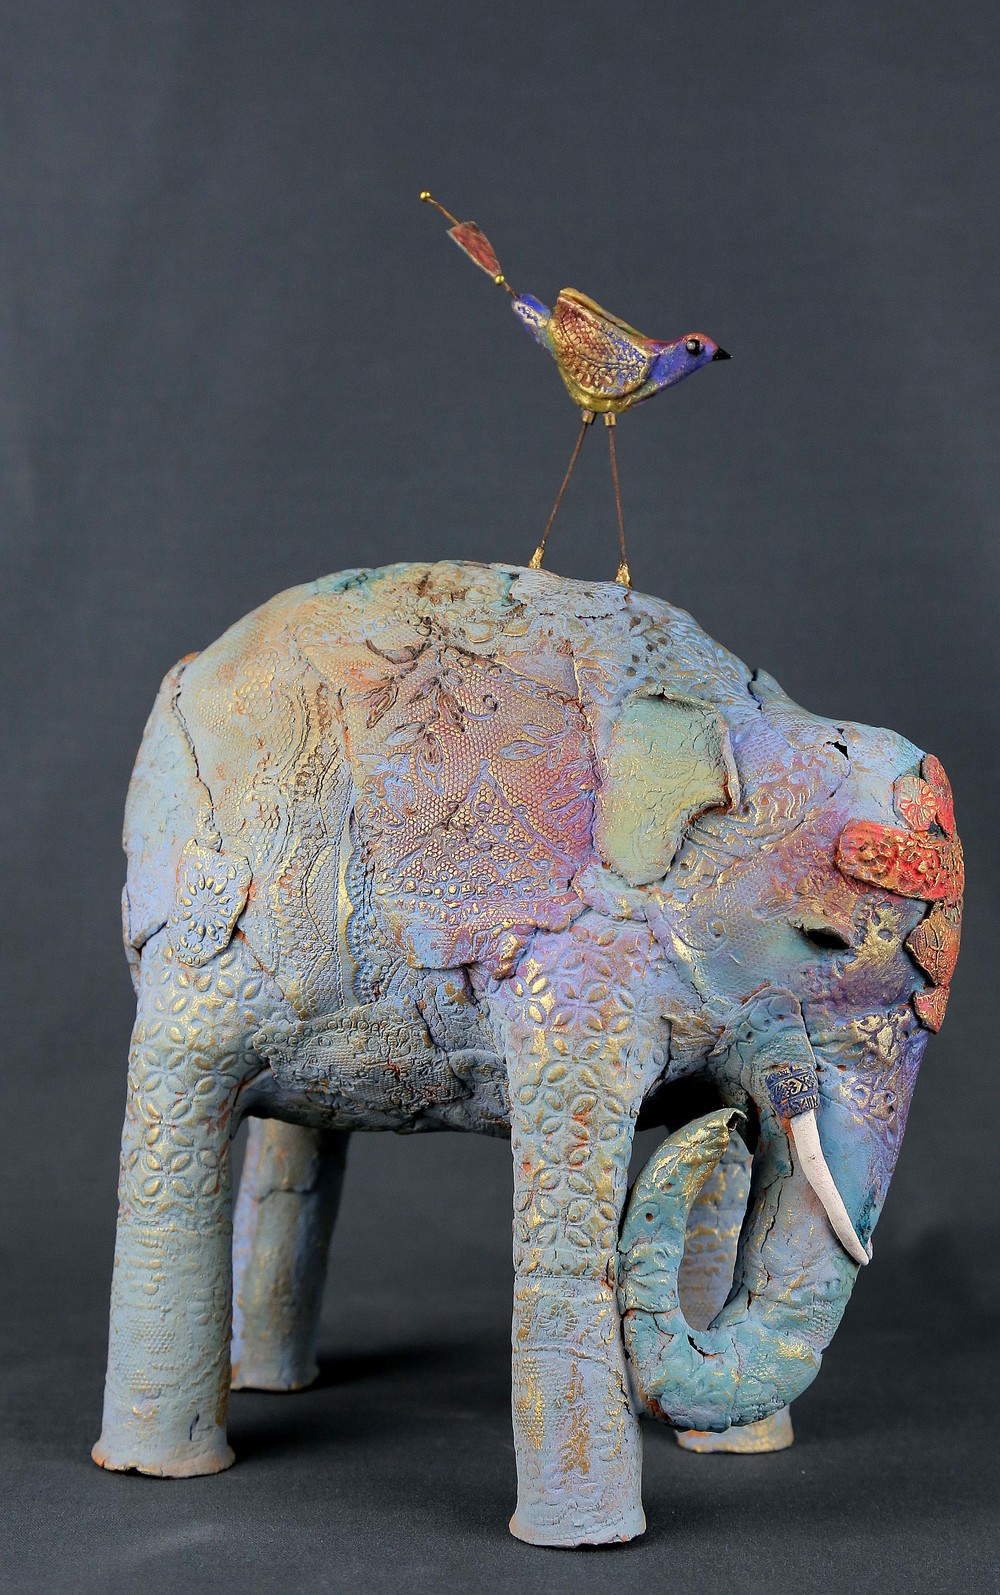 Gokul ceramic & mixed media sold